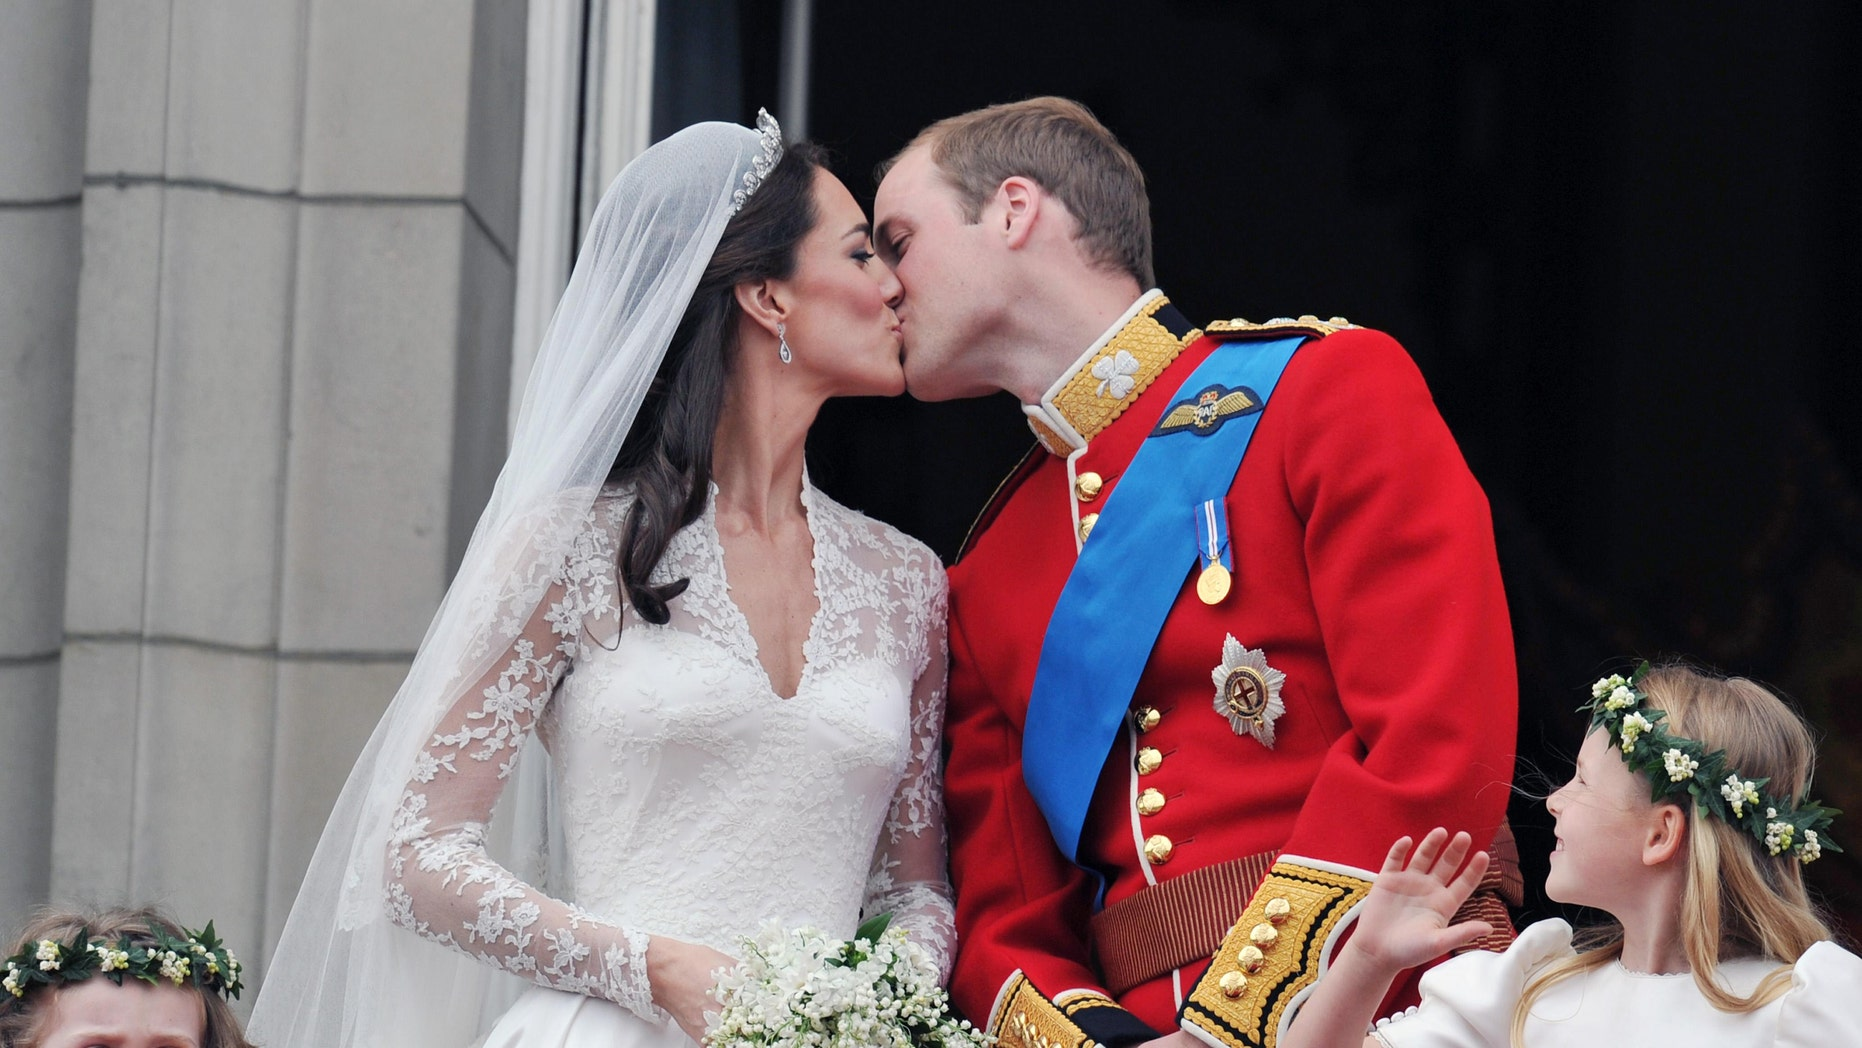 Britain's Prince William and his wife Catherine, Duchess of Cambridge kiss on the balcony of Buckingham Palace, following their wedding at Westminster Abbey in London April 29, 2011.